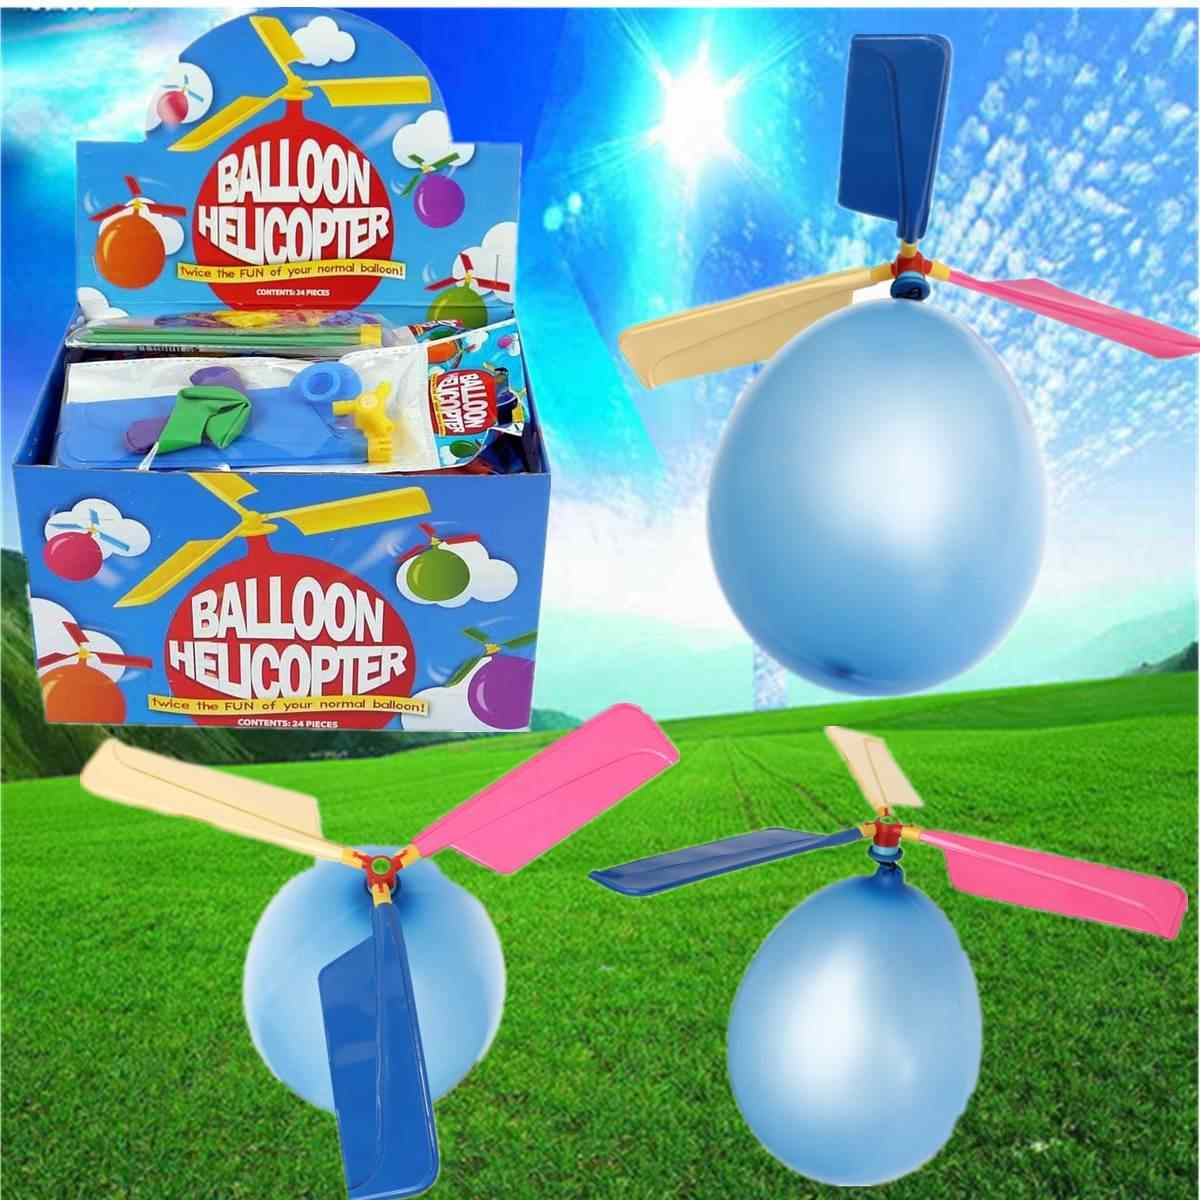 LEORY 10Pcs/ Lot Funny Traditional Classic Sound Balloon Helicopter Kids Play Flying Toys Ball Outdoor Children Sports Funny Toy